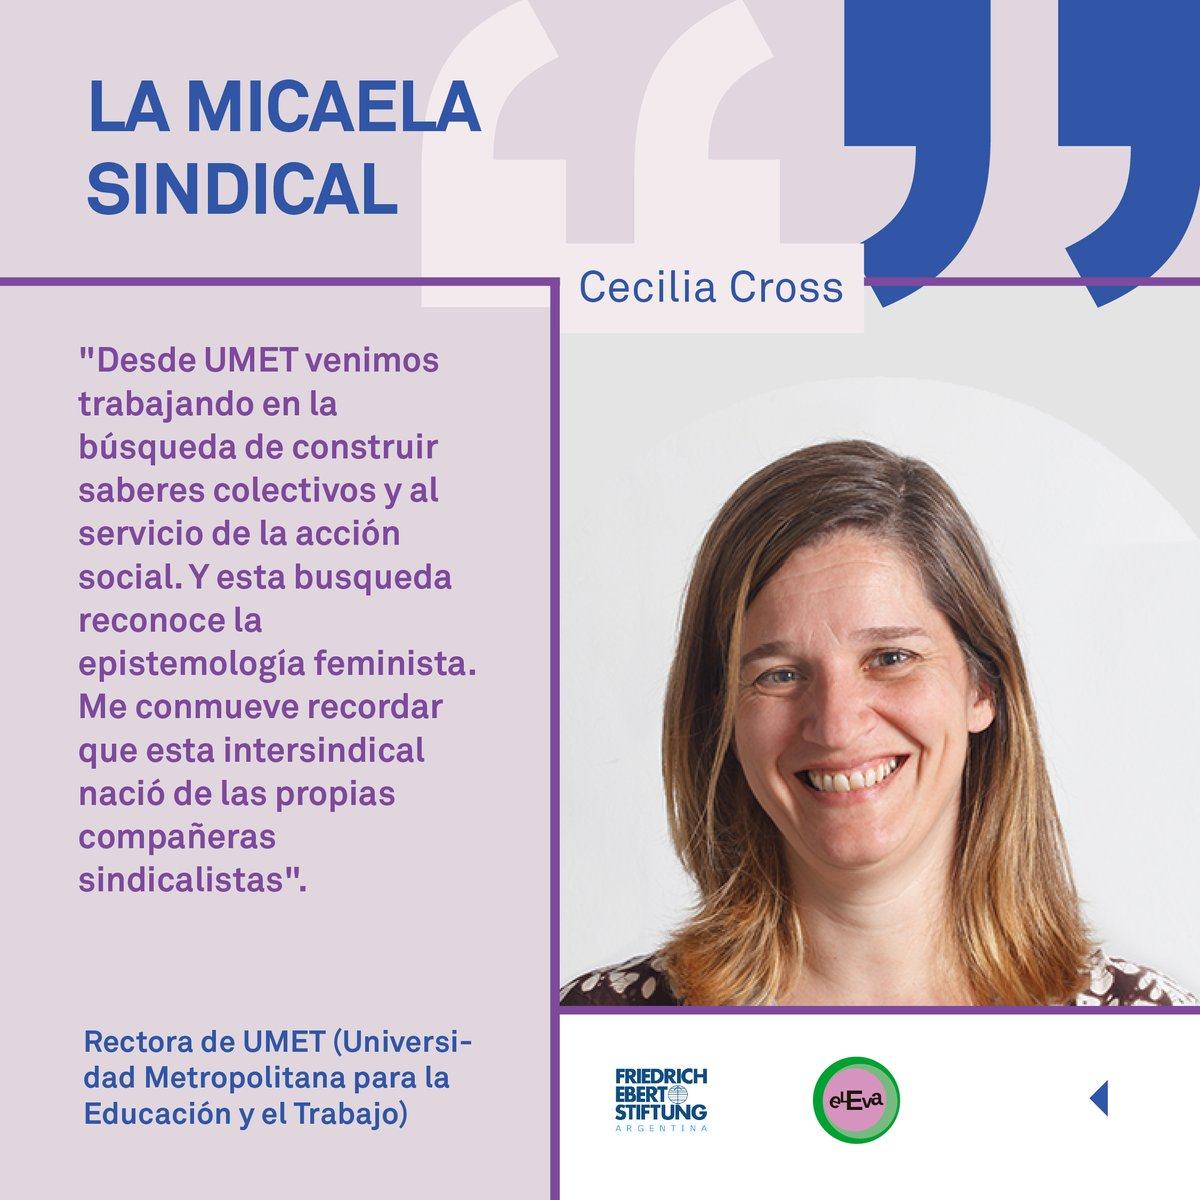 💪💜 Desde @argentina_fes trabajamos junto con @ElEvaok para incorporar la perspectiva de género en los sindicatos. #LeyMicaela  💬 @crosscecilia, rectora de @UMETeduar, en #LaMicaelaSindical.  ▶️ Conversatorio completo en: https://t.co/WrQ3bWvLRi https://t.co/kCHRDpRvAJ